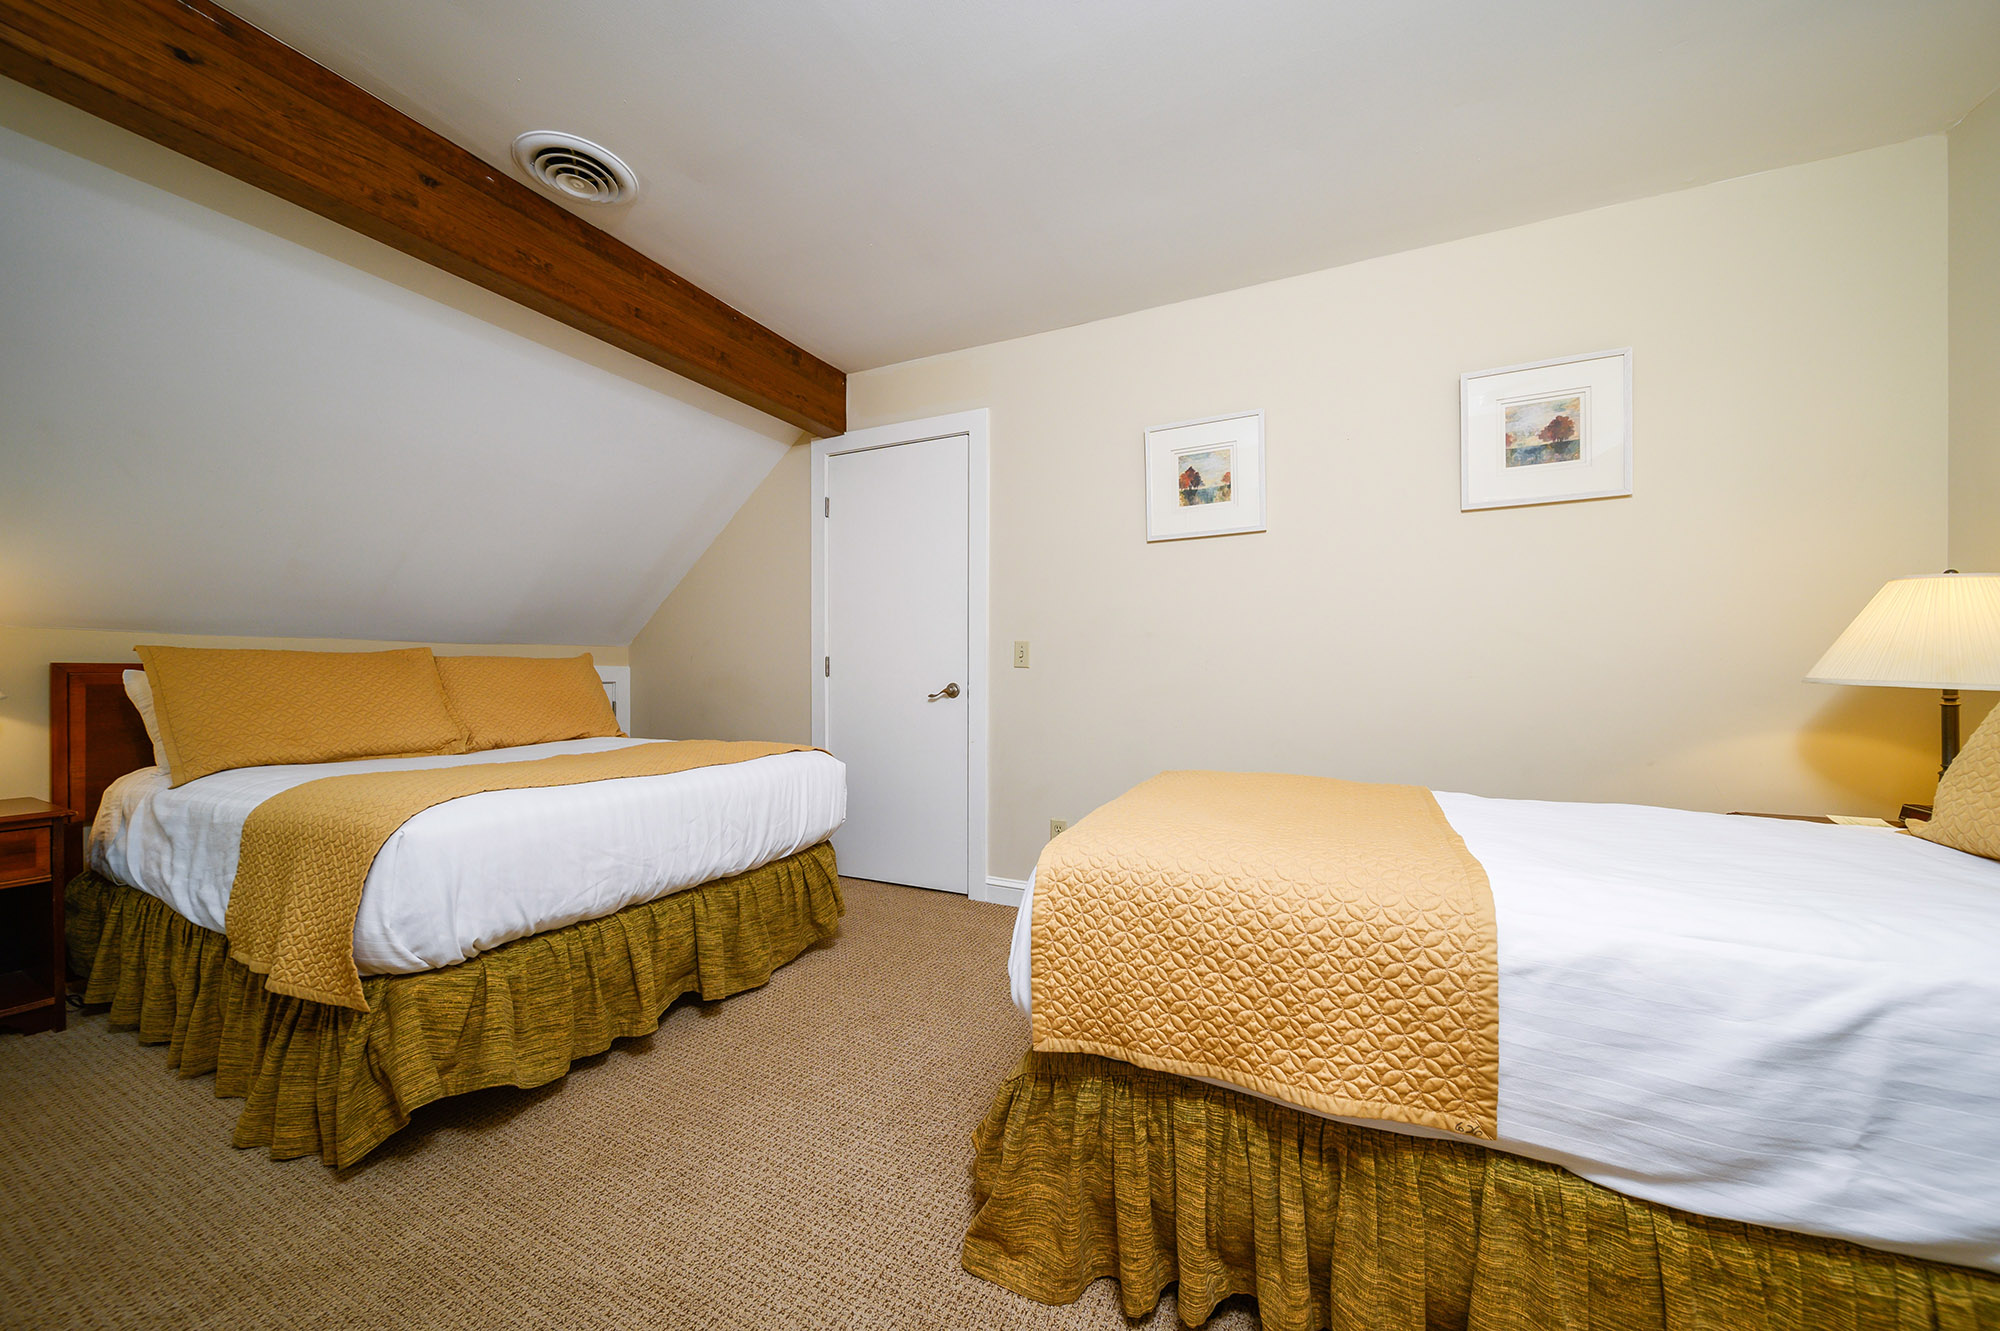 Town House Double Bedded Room